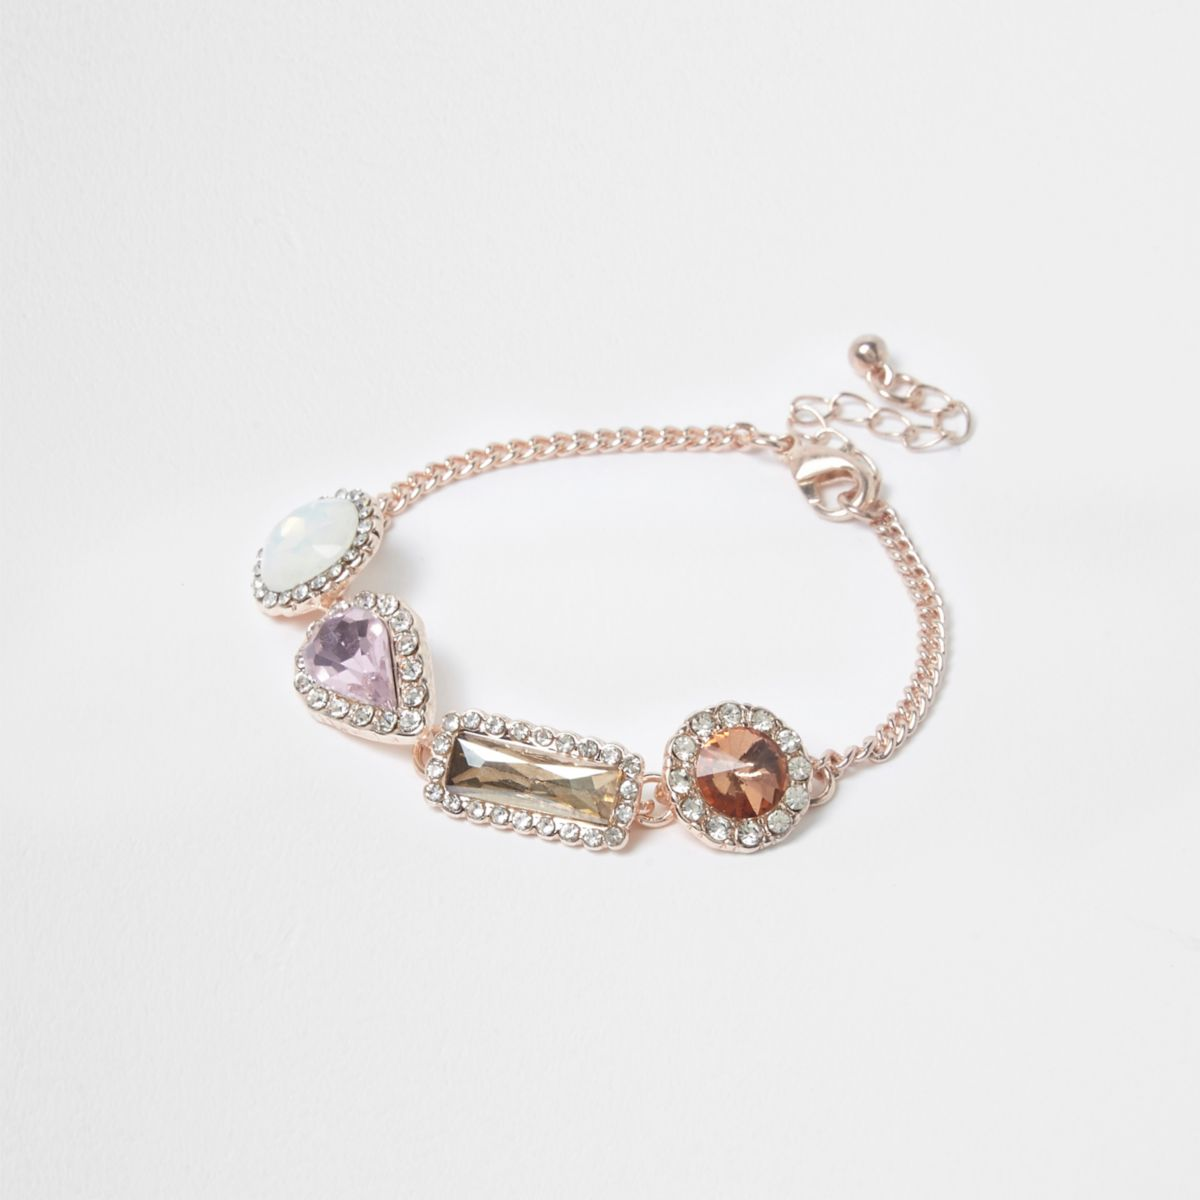 Rose gold tone gem stone bracelet